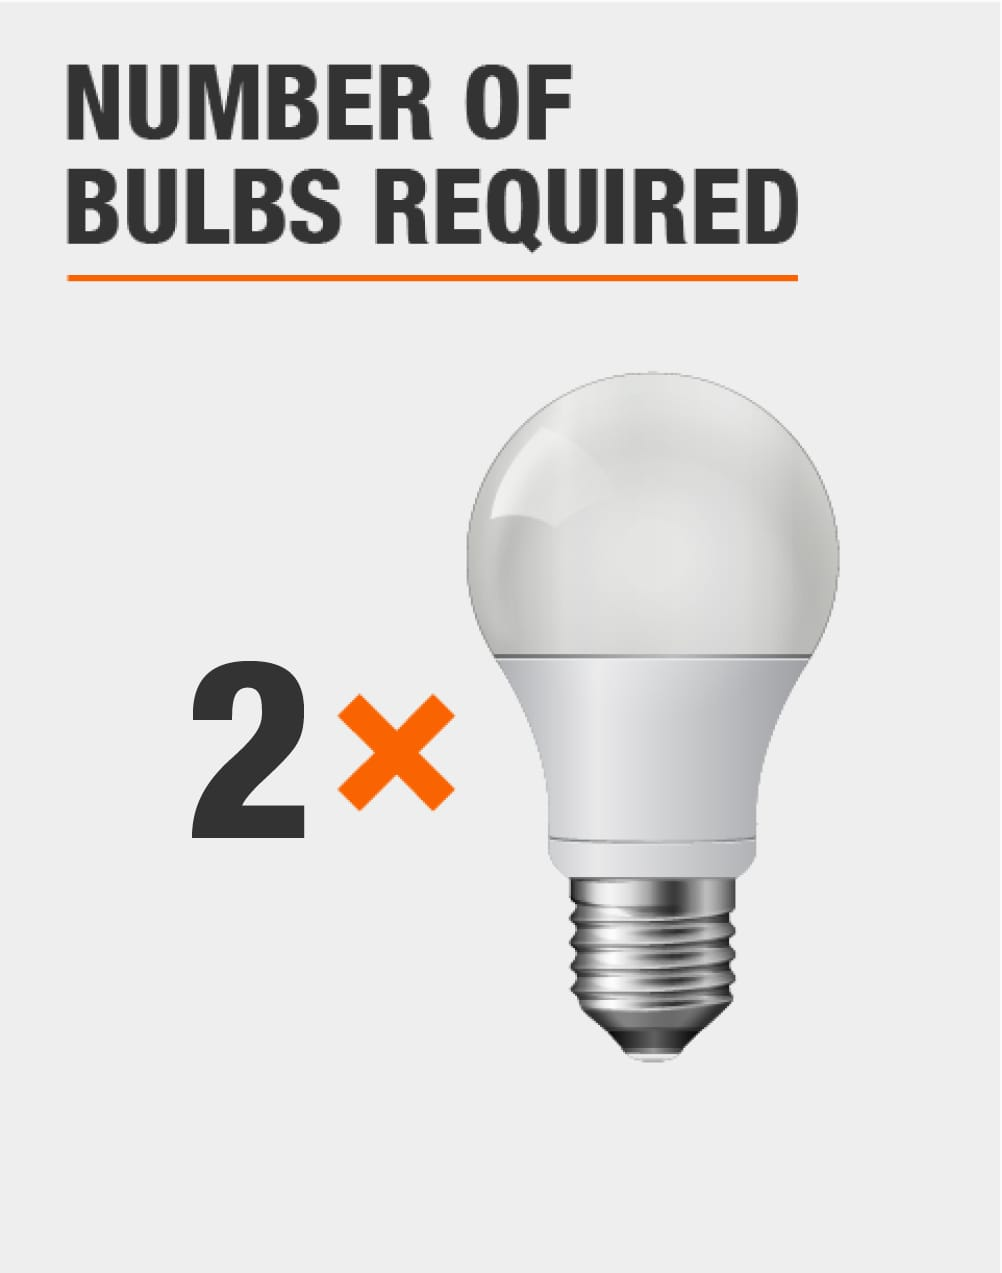 number of bulbs required is 2